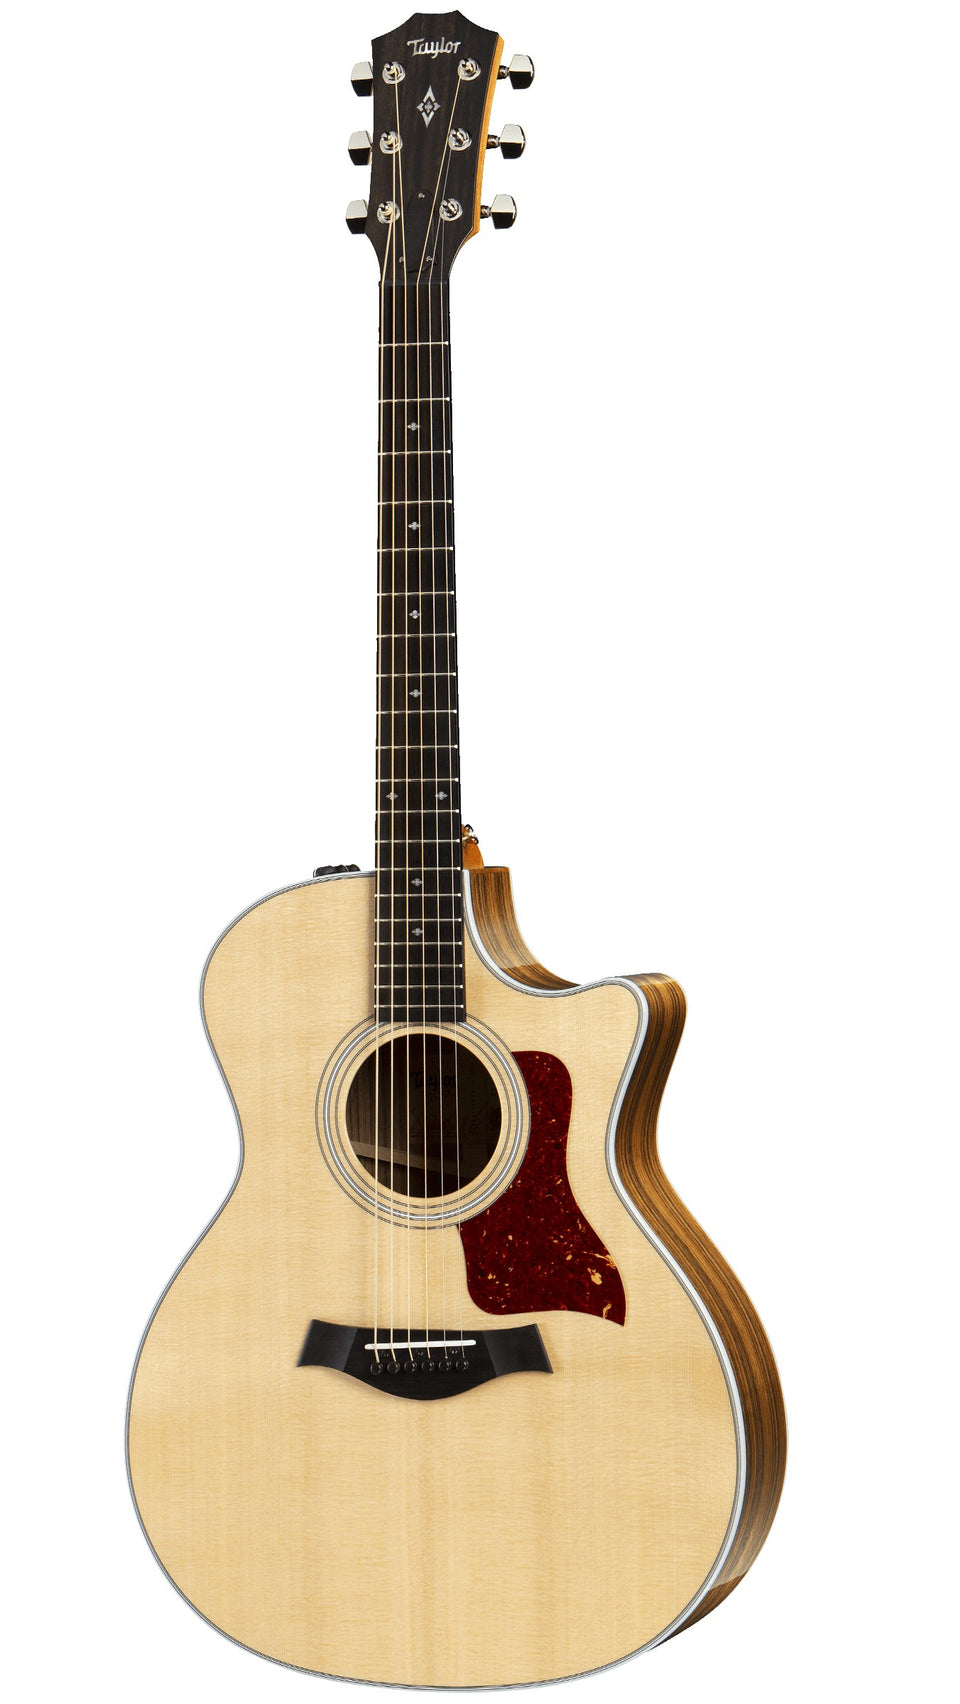 Taylor 414ce Grand Auditorium A/E Guitar - Ovangkol